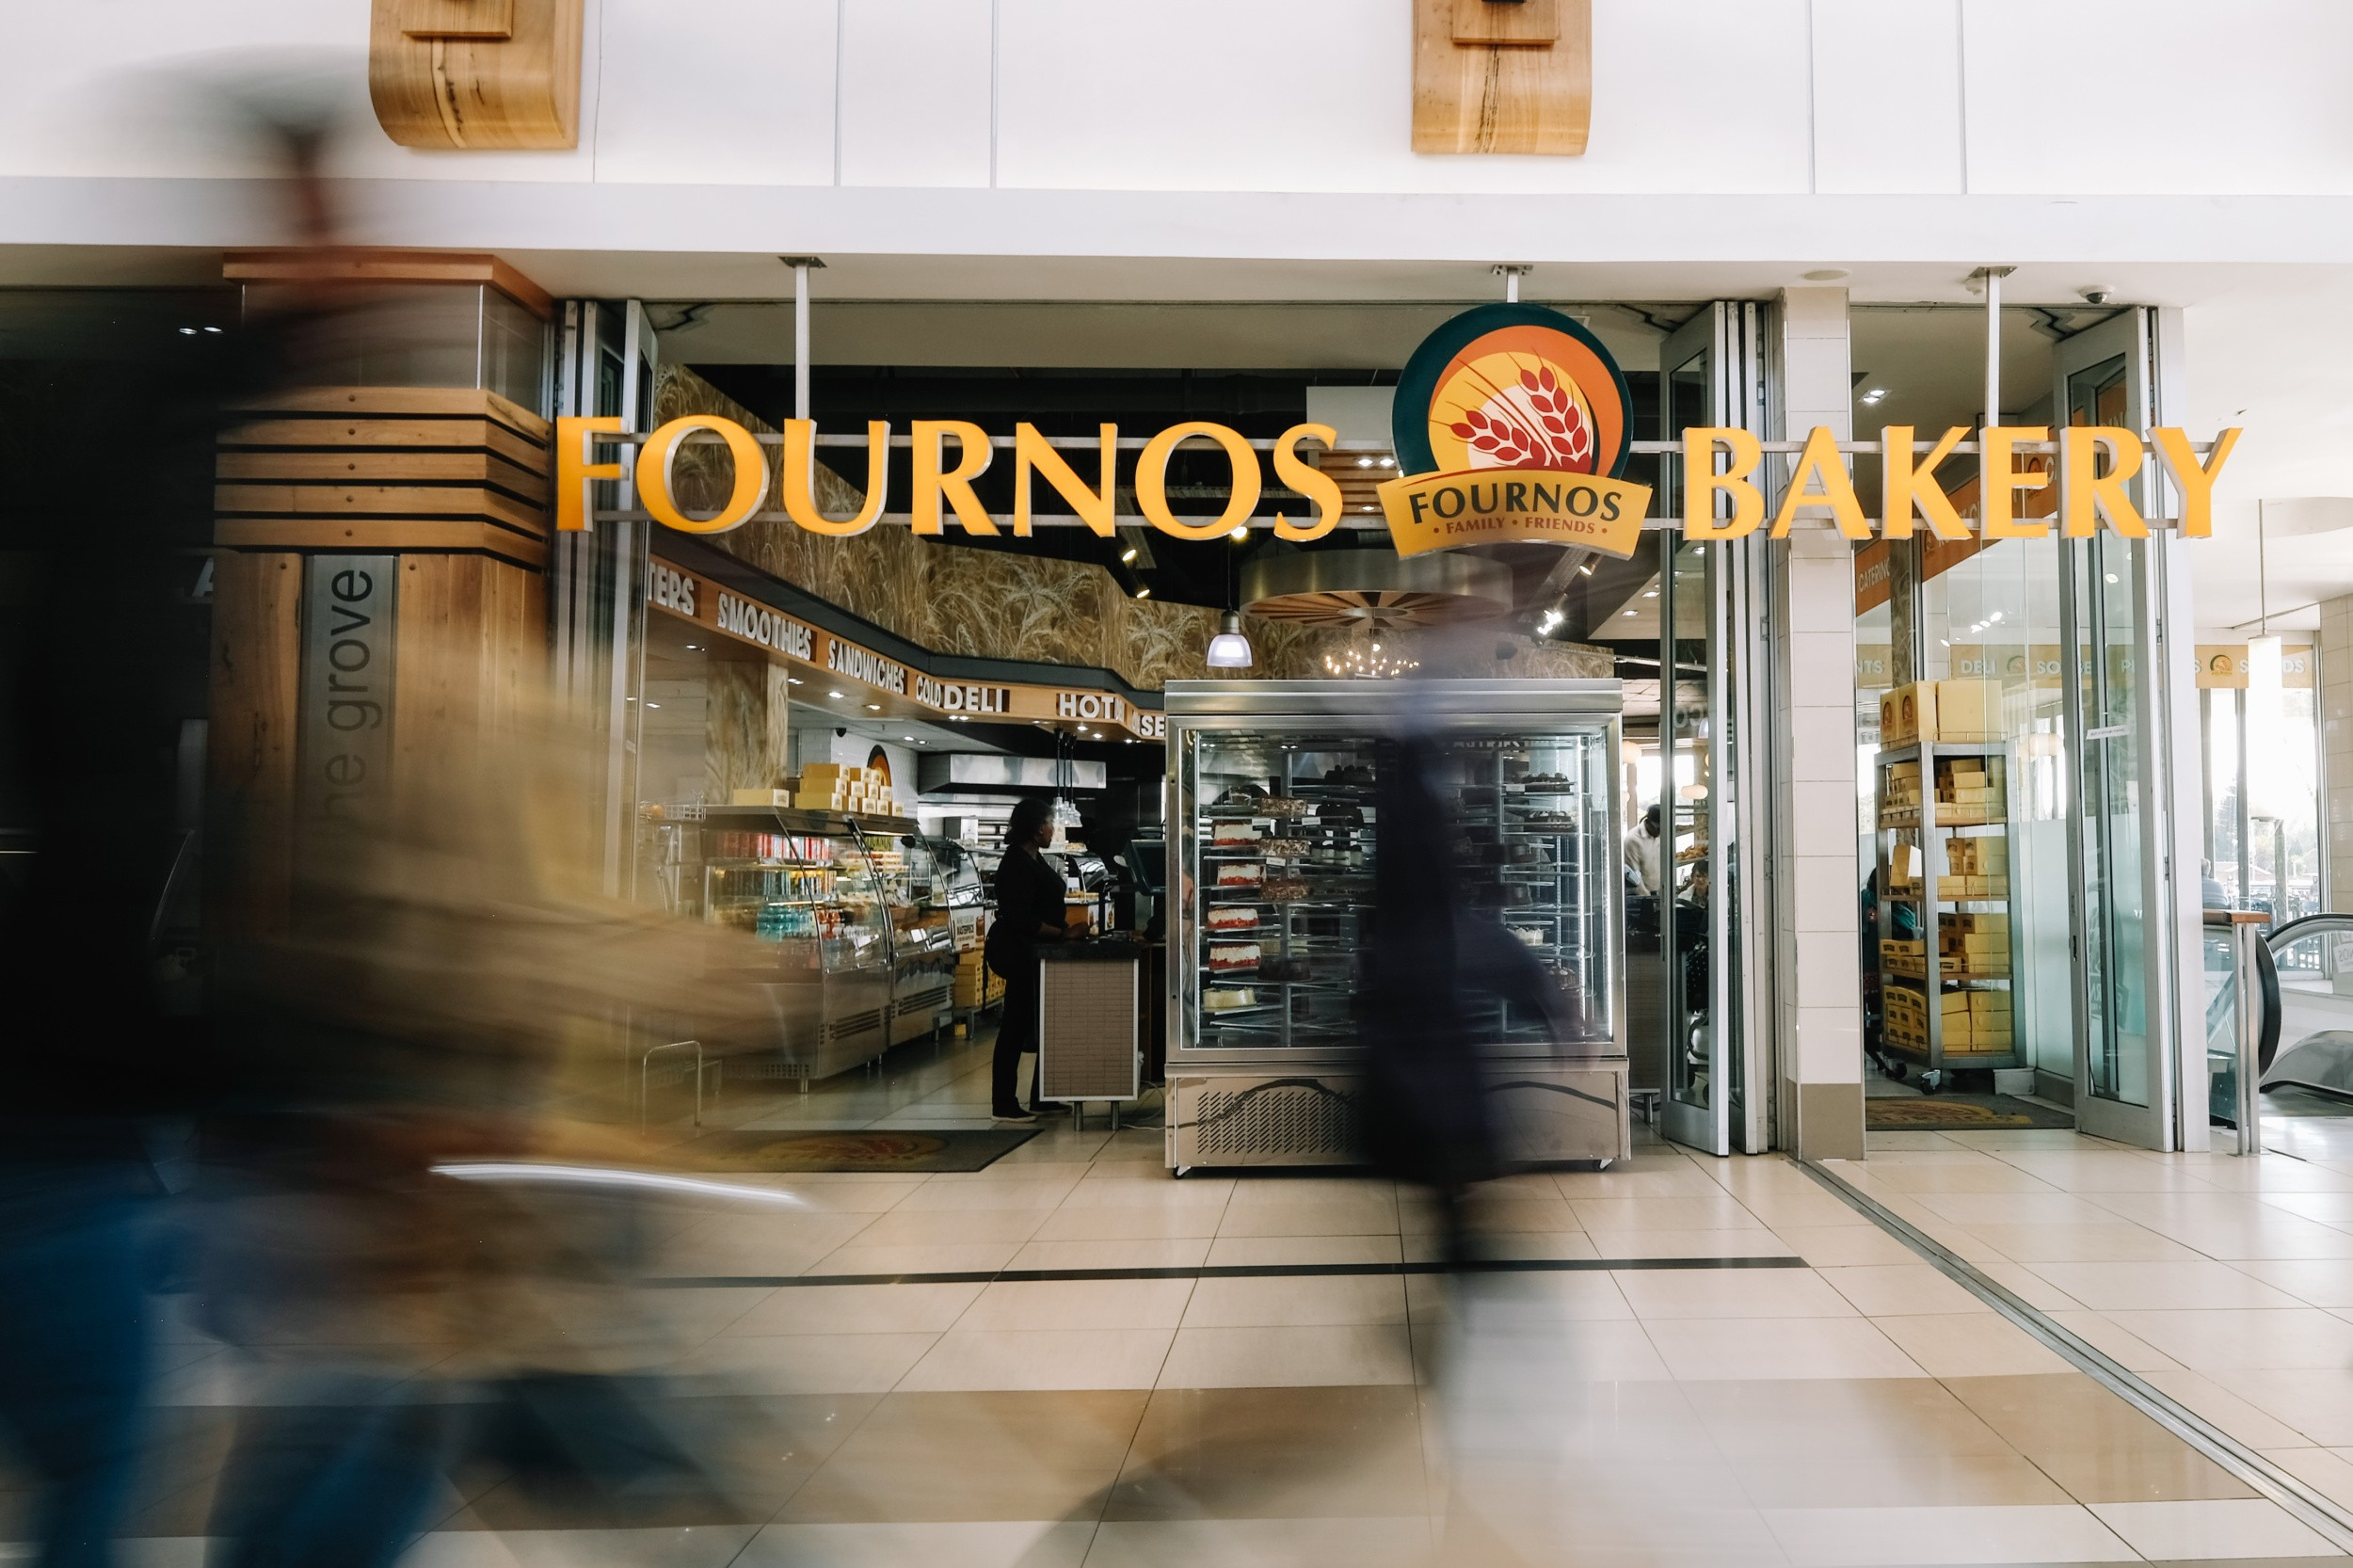 Fournos-Bakery-at-The-Grove-Mall